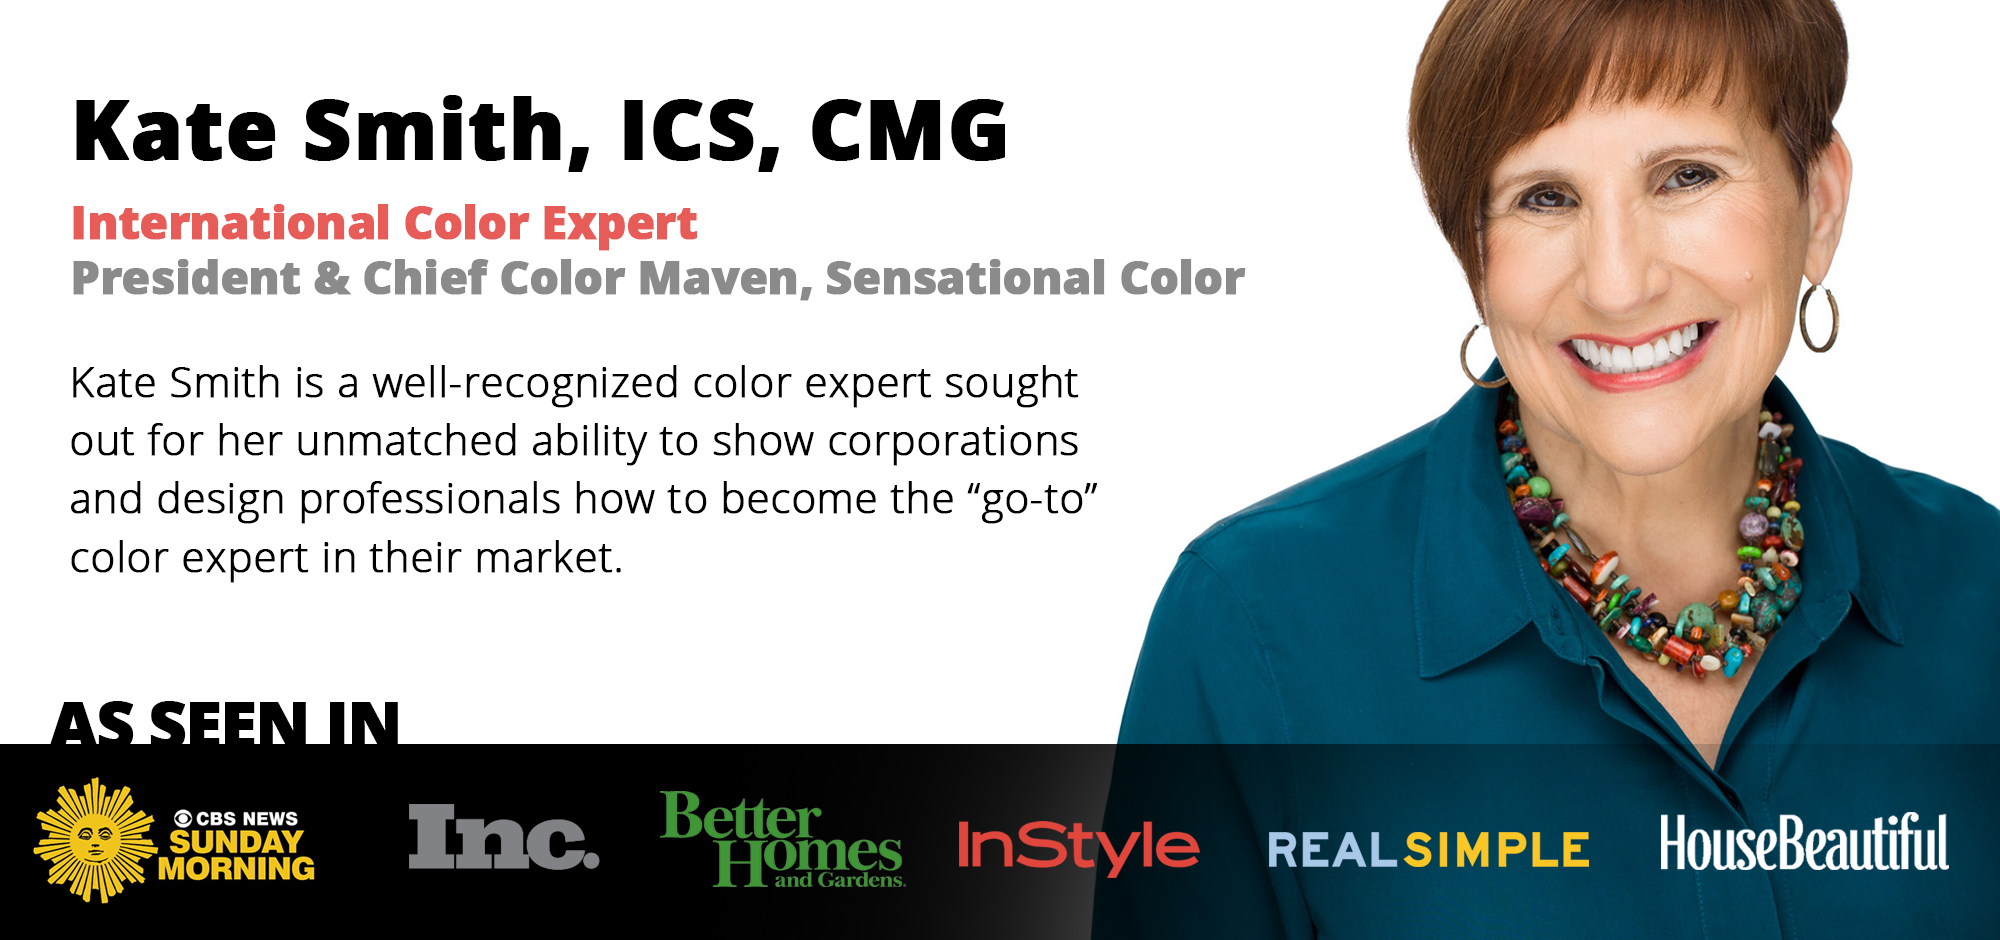 Color expert Kate Smith